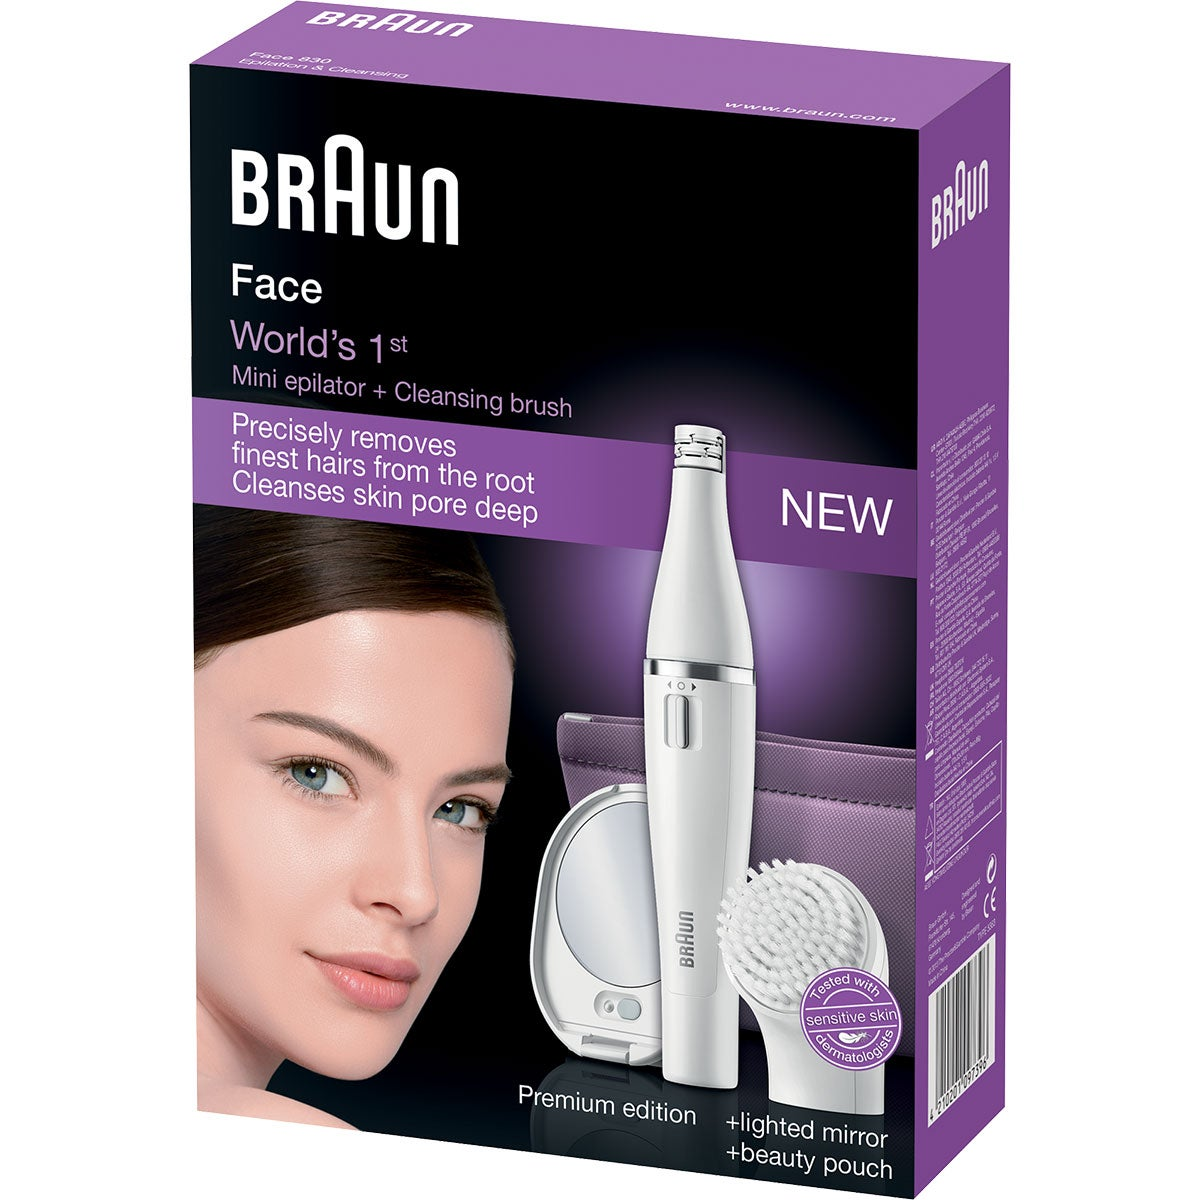 Braun Epilation & Cleansing Face 830